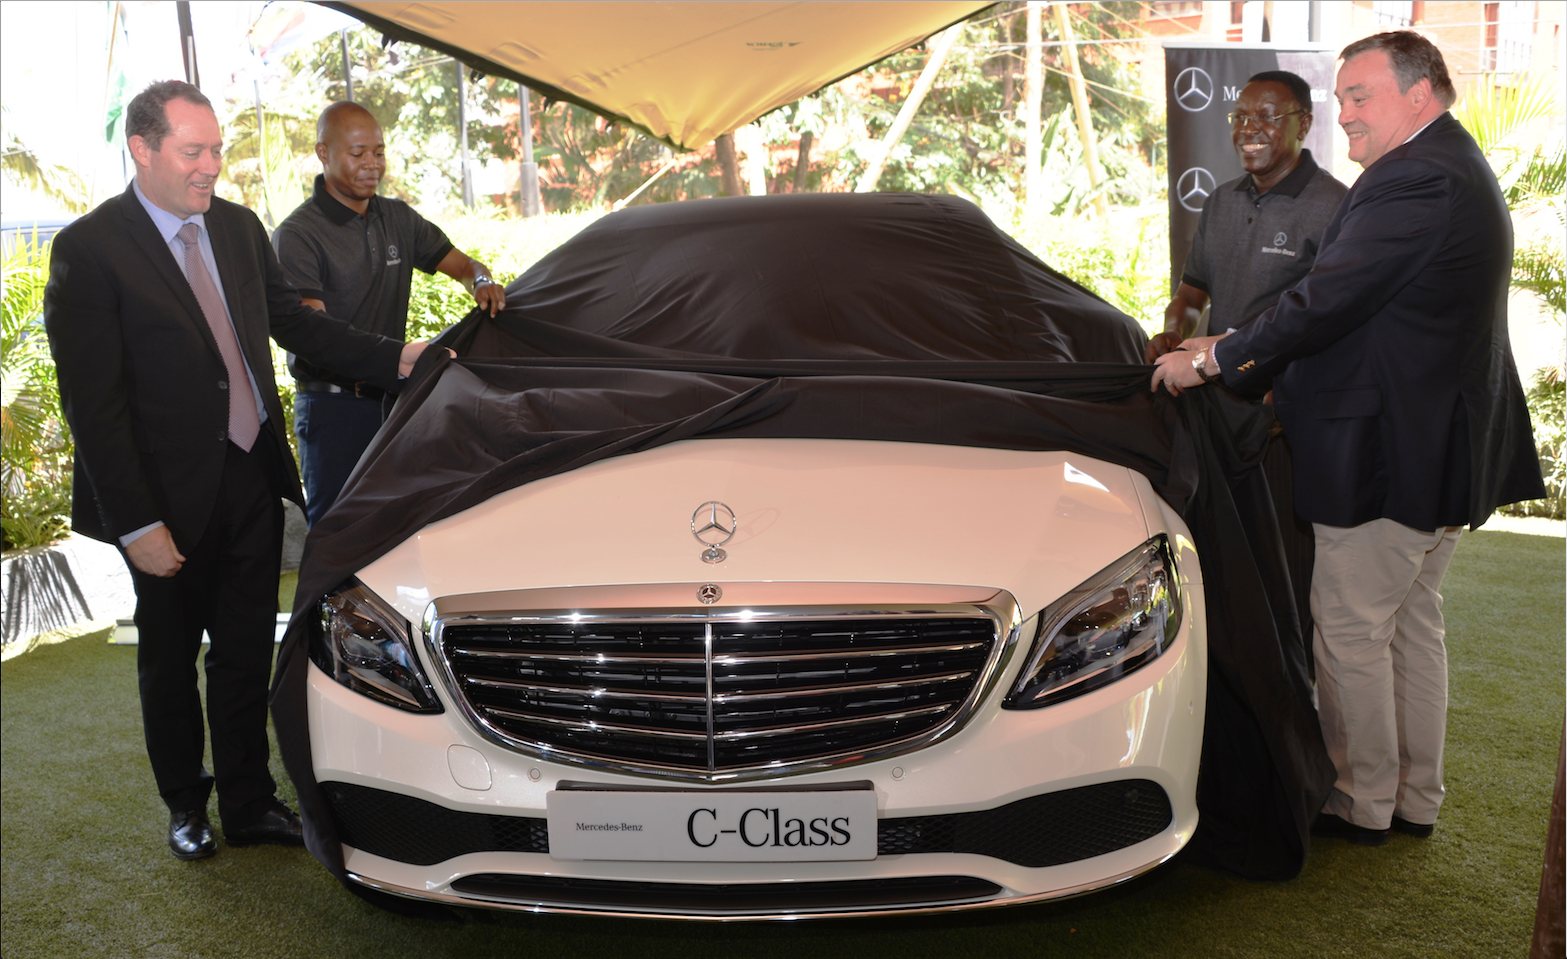 DT Dobie introduces Mercedes Benz C-Class 1500cc